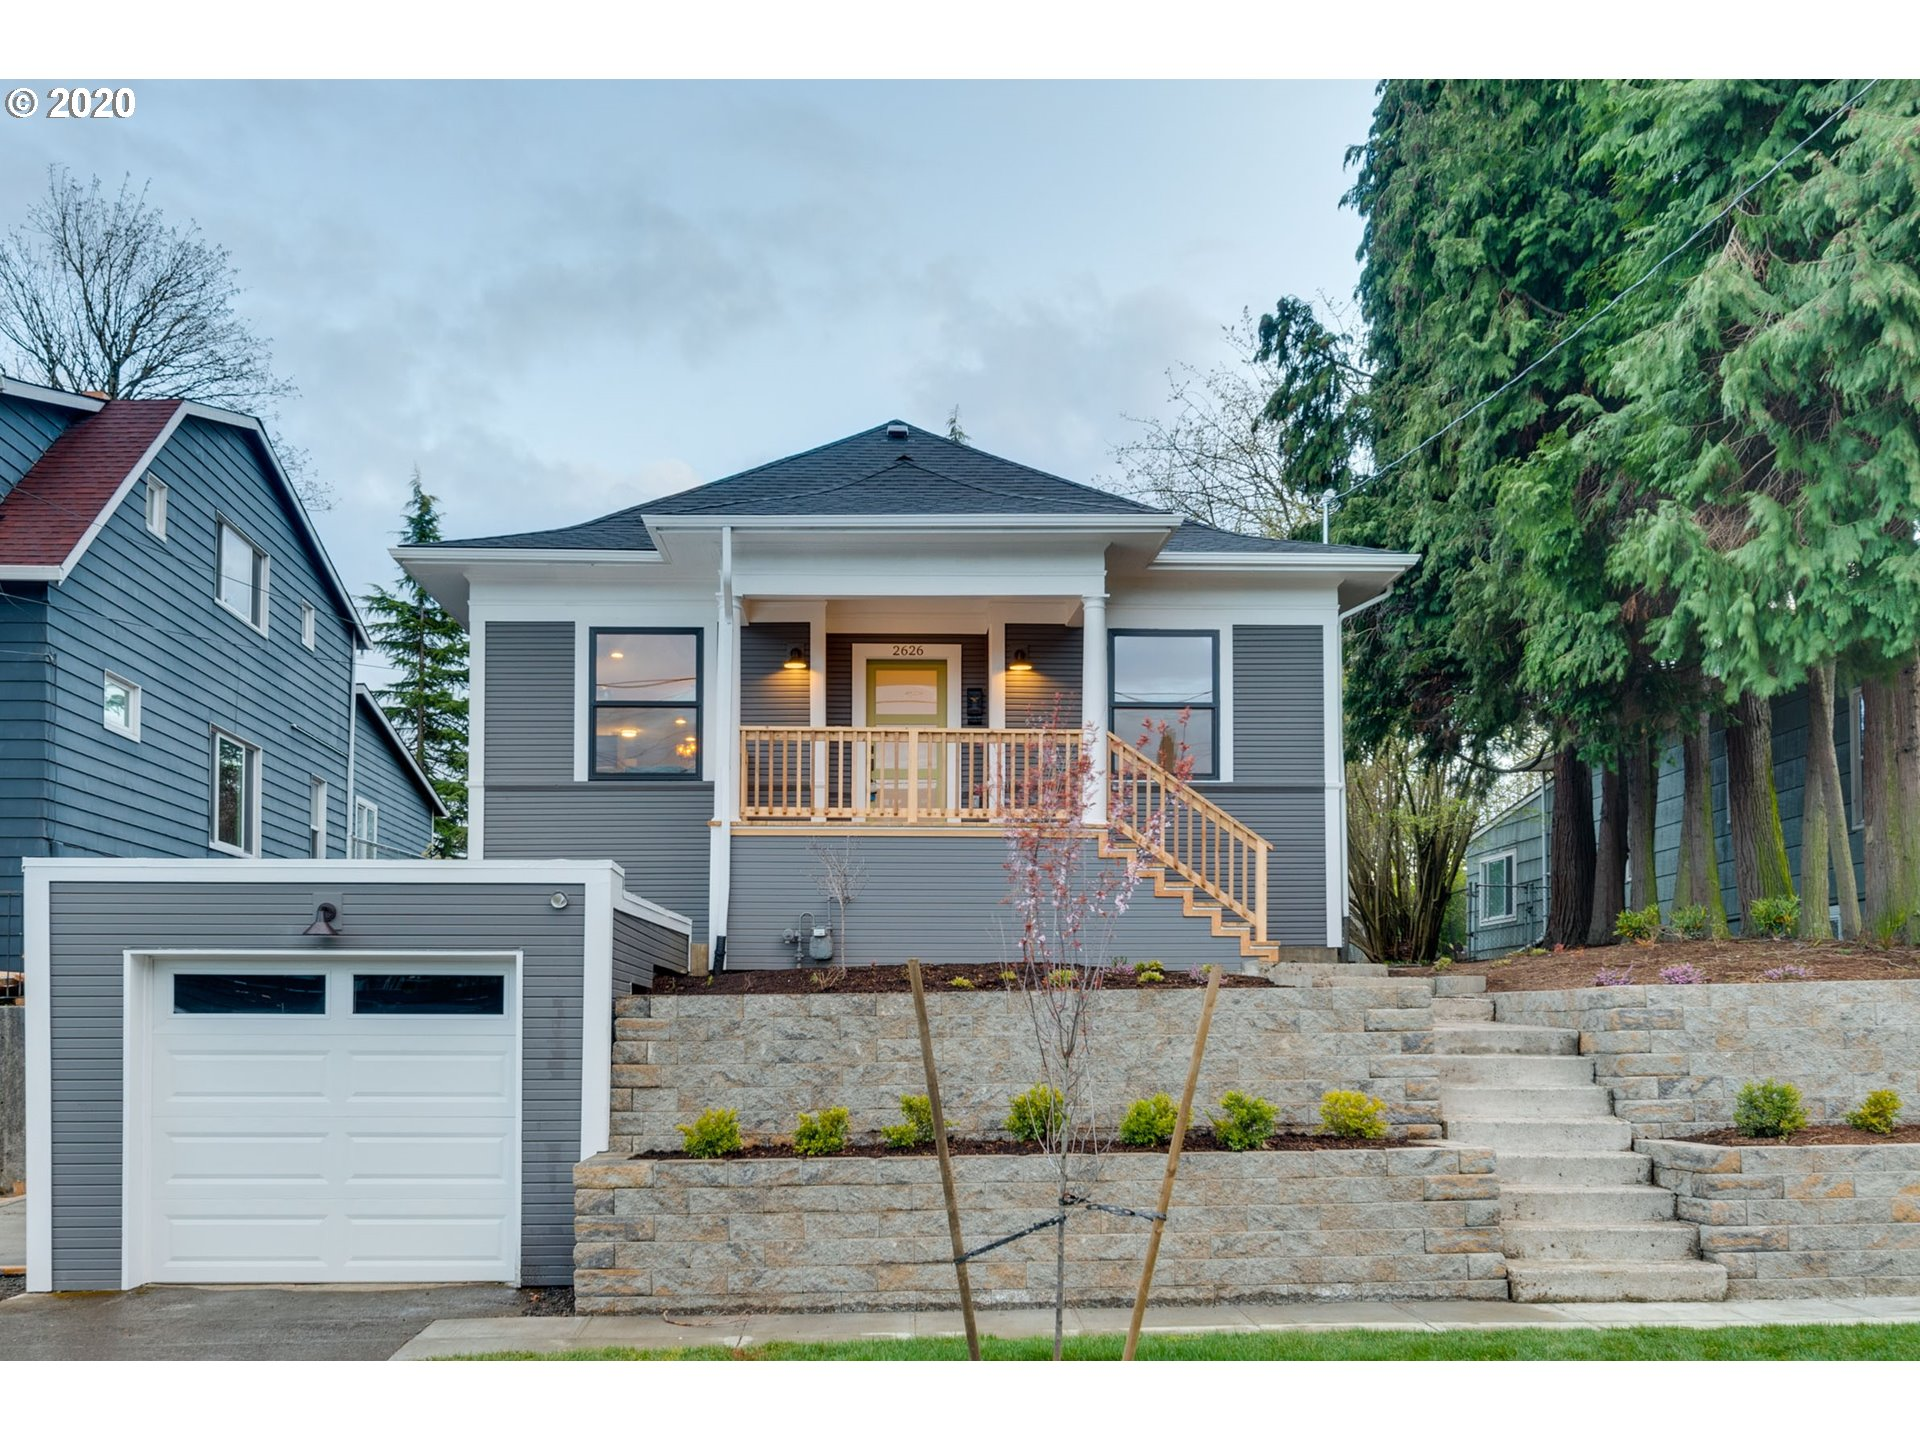 Fantastic location walk/bike to shopping, restaurants, cafes, quick access to downtown Pdx. Completely remodeled down to the studs - new roof, sewer line, windows, HVAC, wtr htr, electrical, plumbing, flooring, drywall, fixtures. Master suite on main has w/in closet, tiled shower, French doors to backyard. Kitchen features eat-in island, pantry, quartz counters, tiled backsplash & black Matte SS appliances. Permitted finished basement has 4th bedroom, full bath, large family room & bonus room. [Home Energy Score = 4. HES Report at https://rpt.greenbuildingregistry.com/hes/OR10183207]